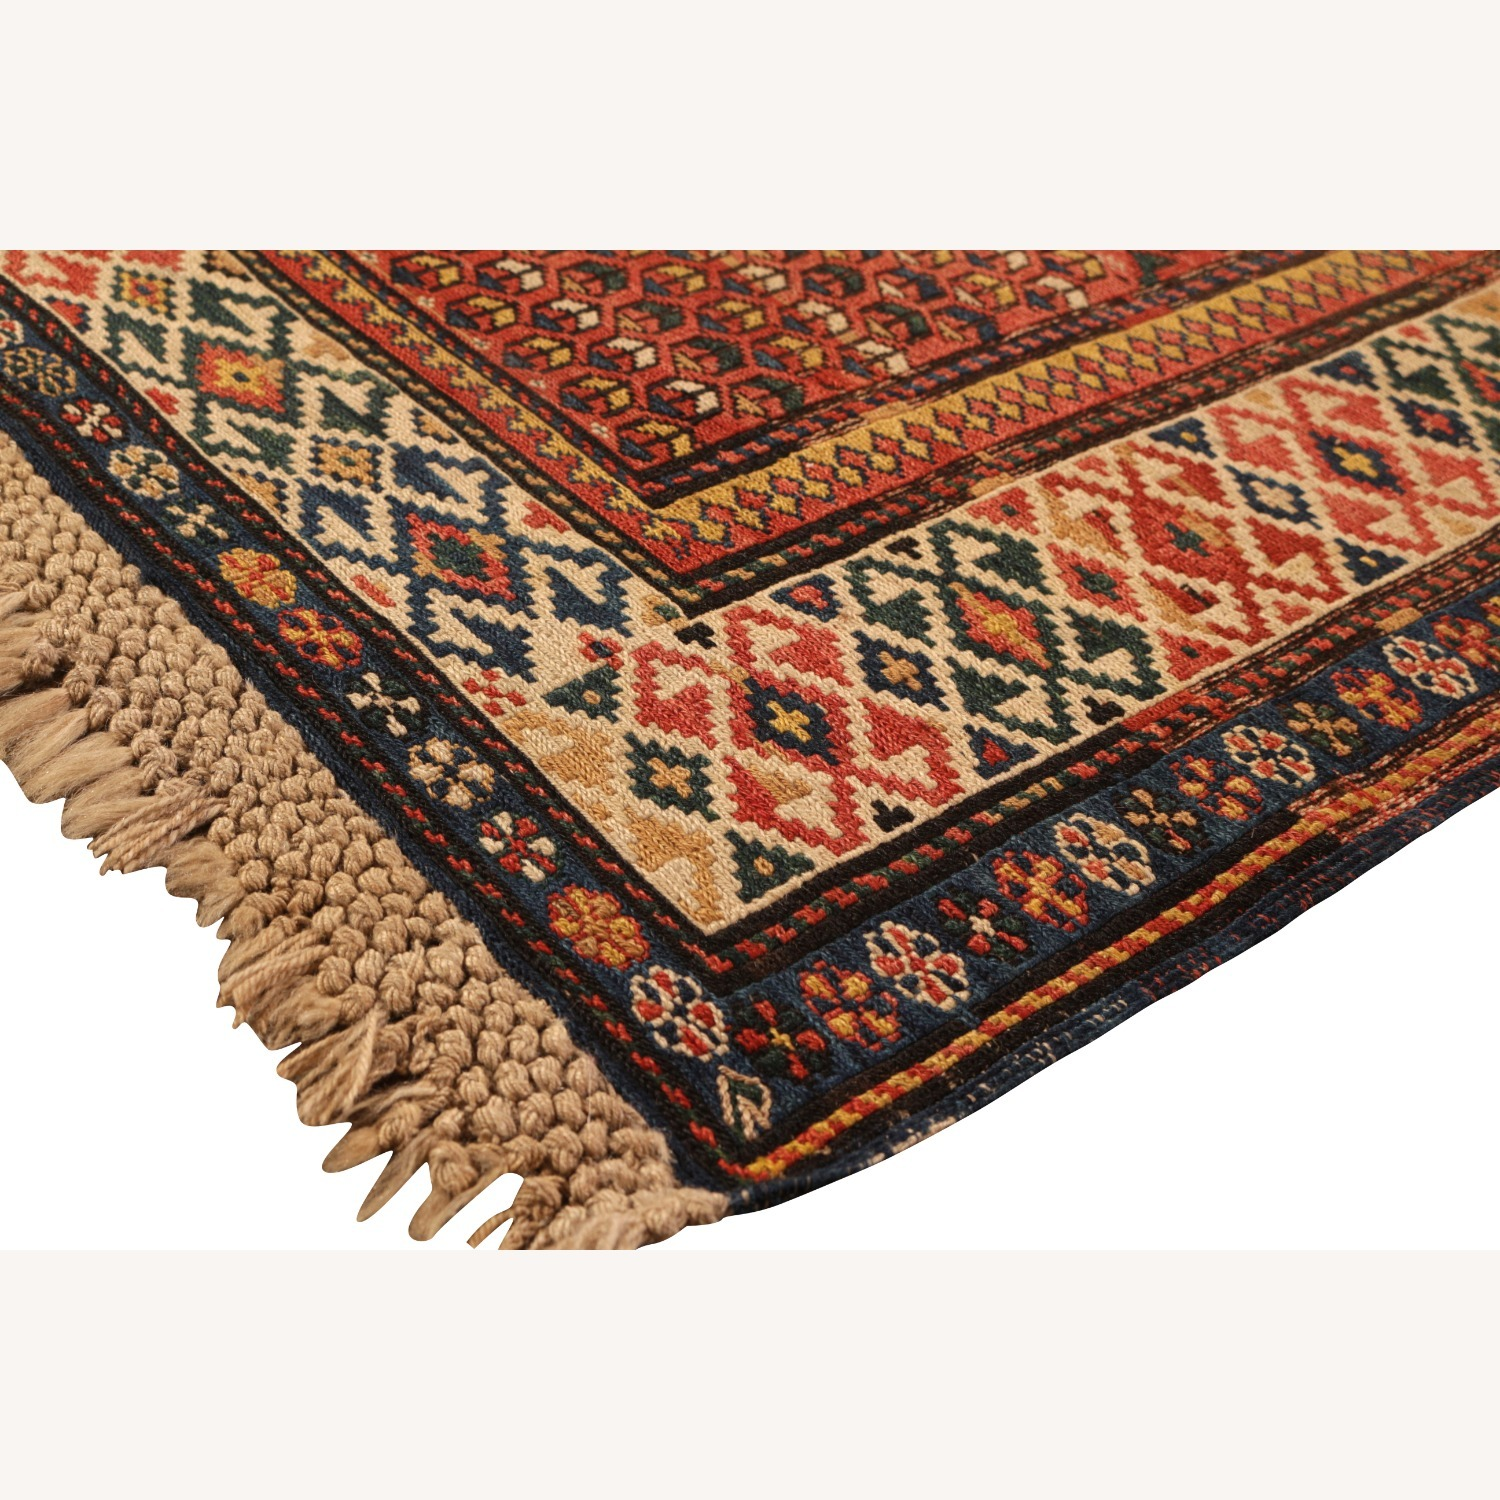 19th-Century Antique Soumak Rug - image-2